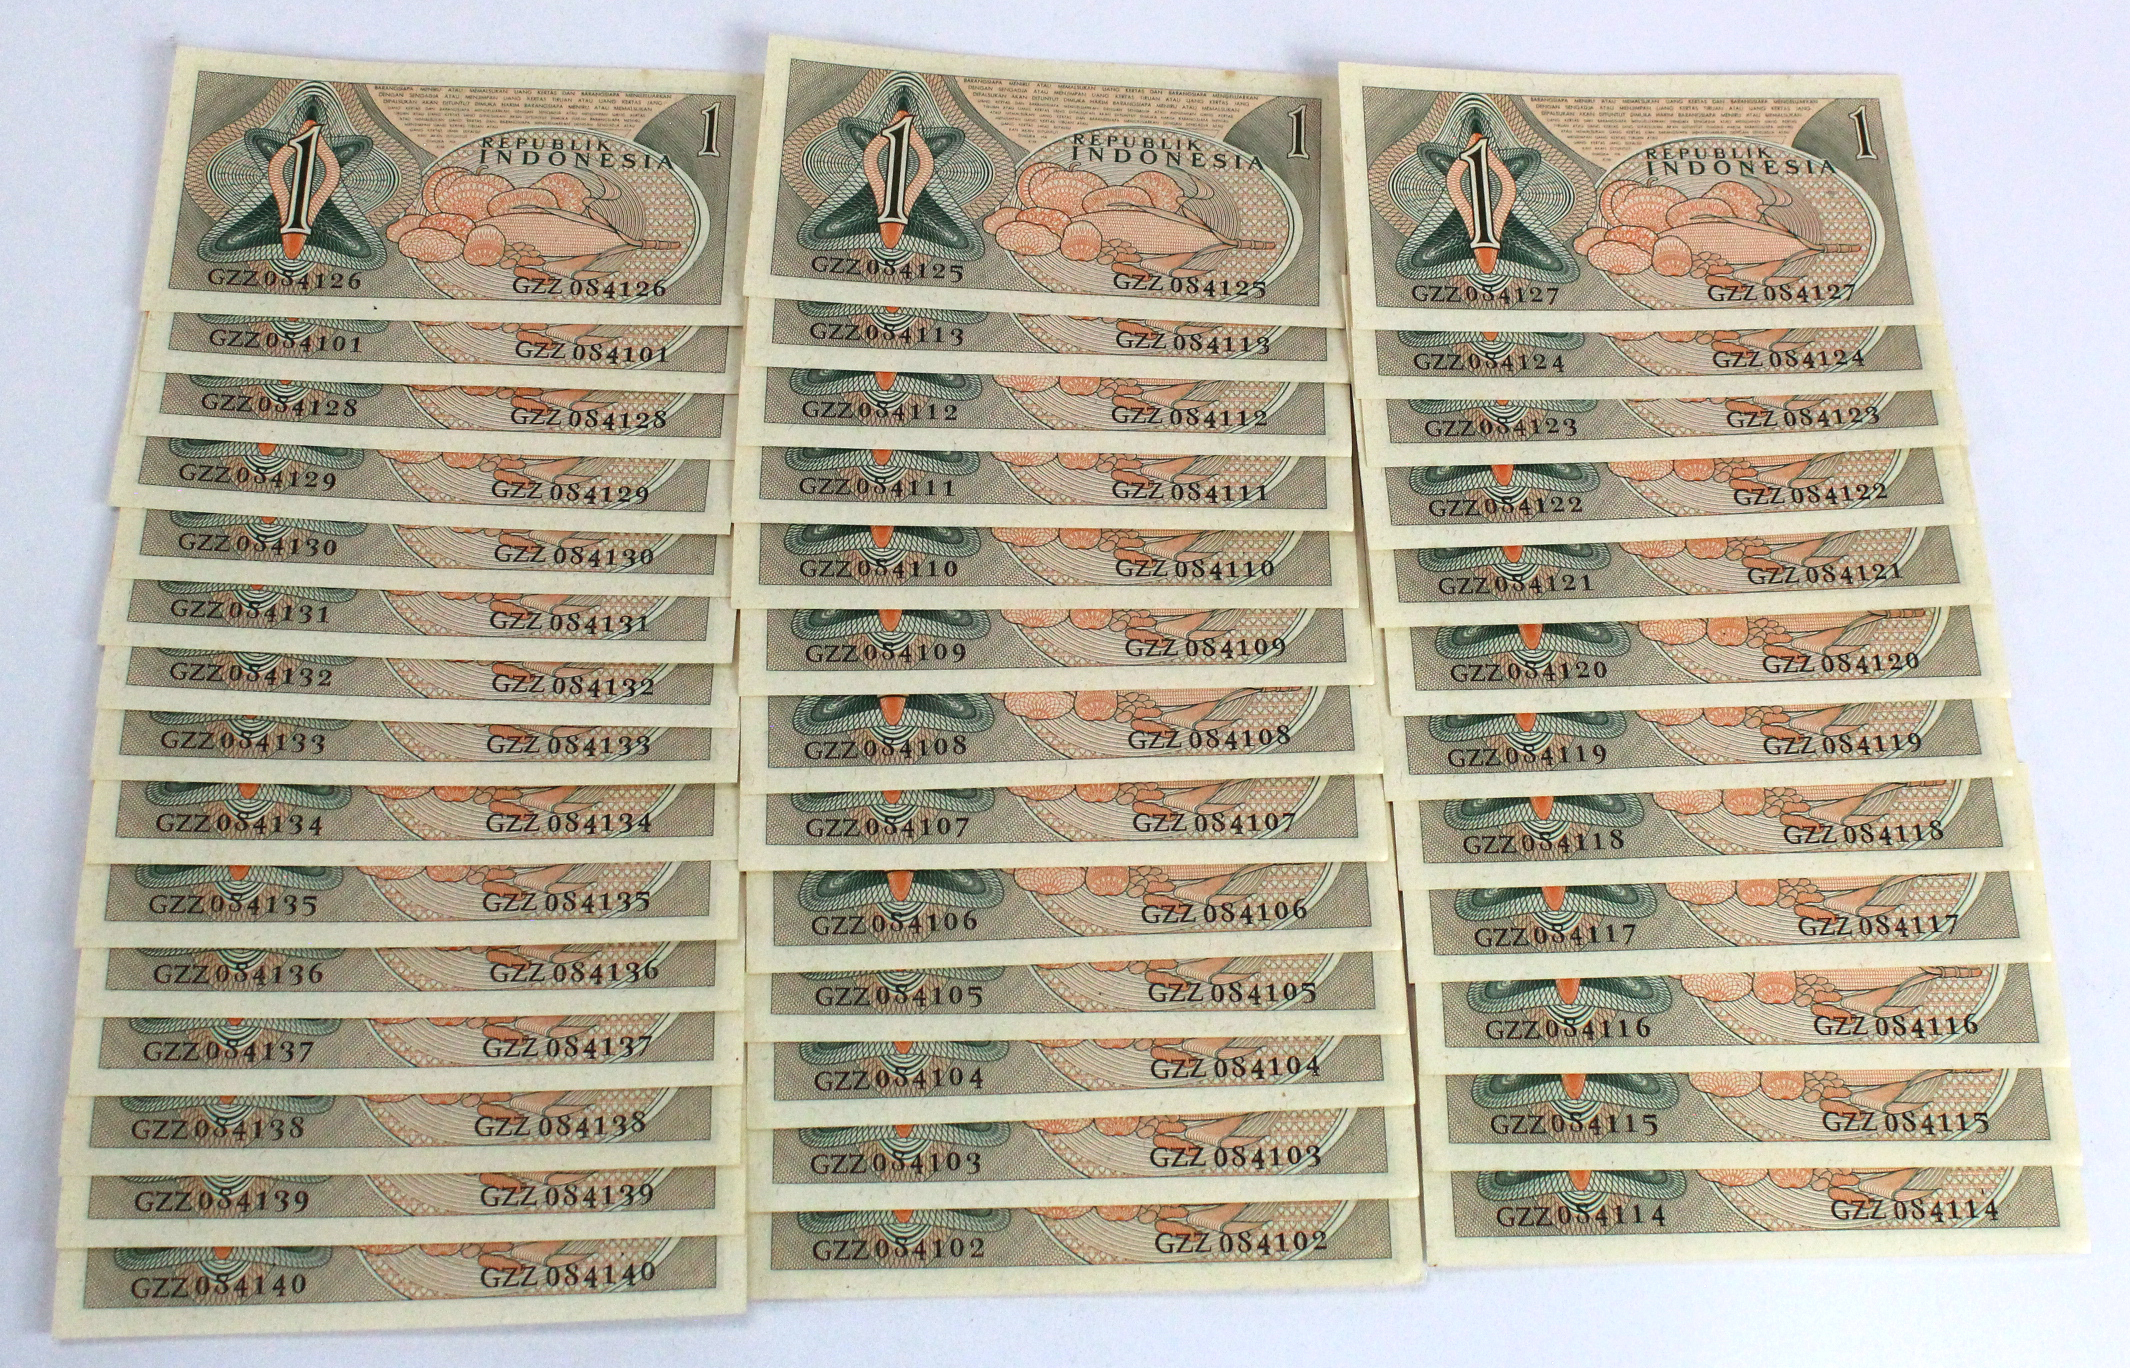 Indonesia 1 Rupiah (40) dated 1961, a consecutively numbered run of 40 notes, serial GZZ 084101 -